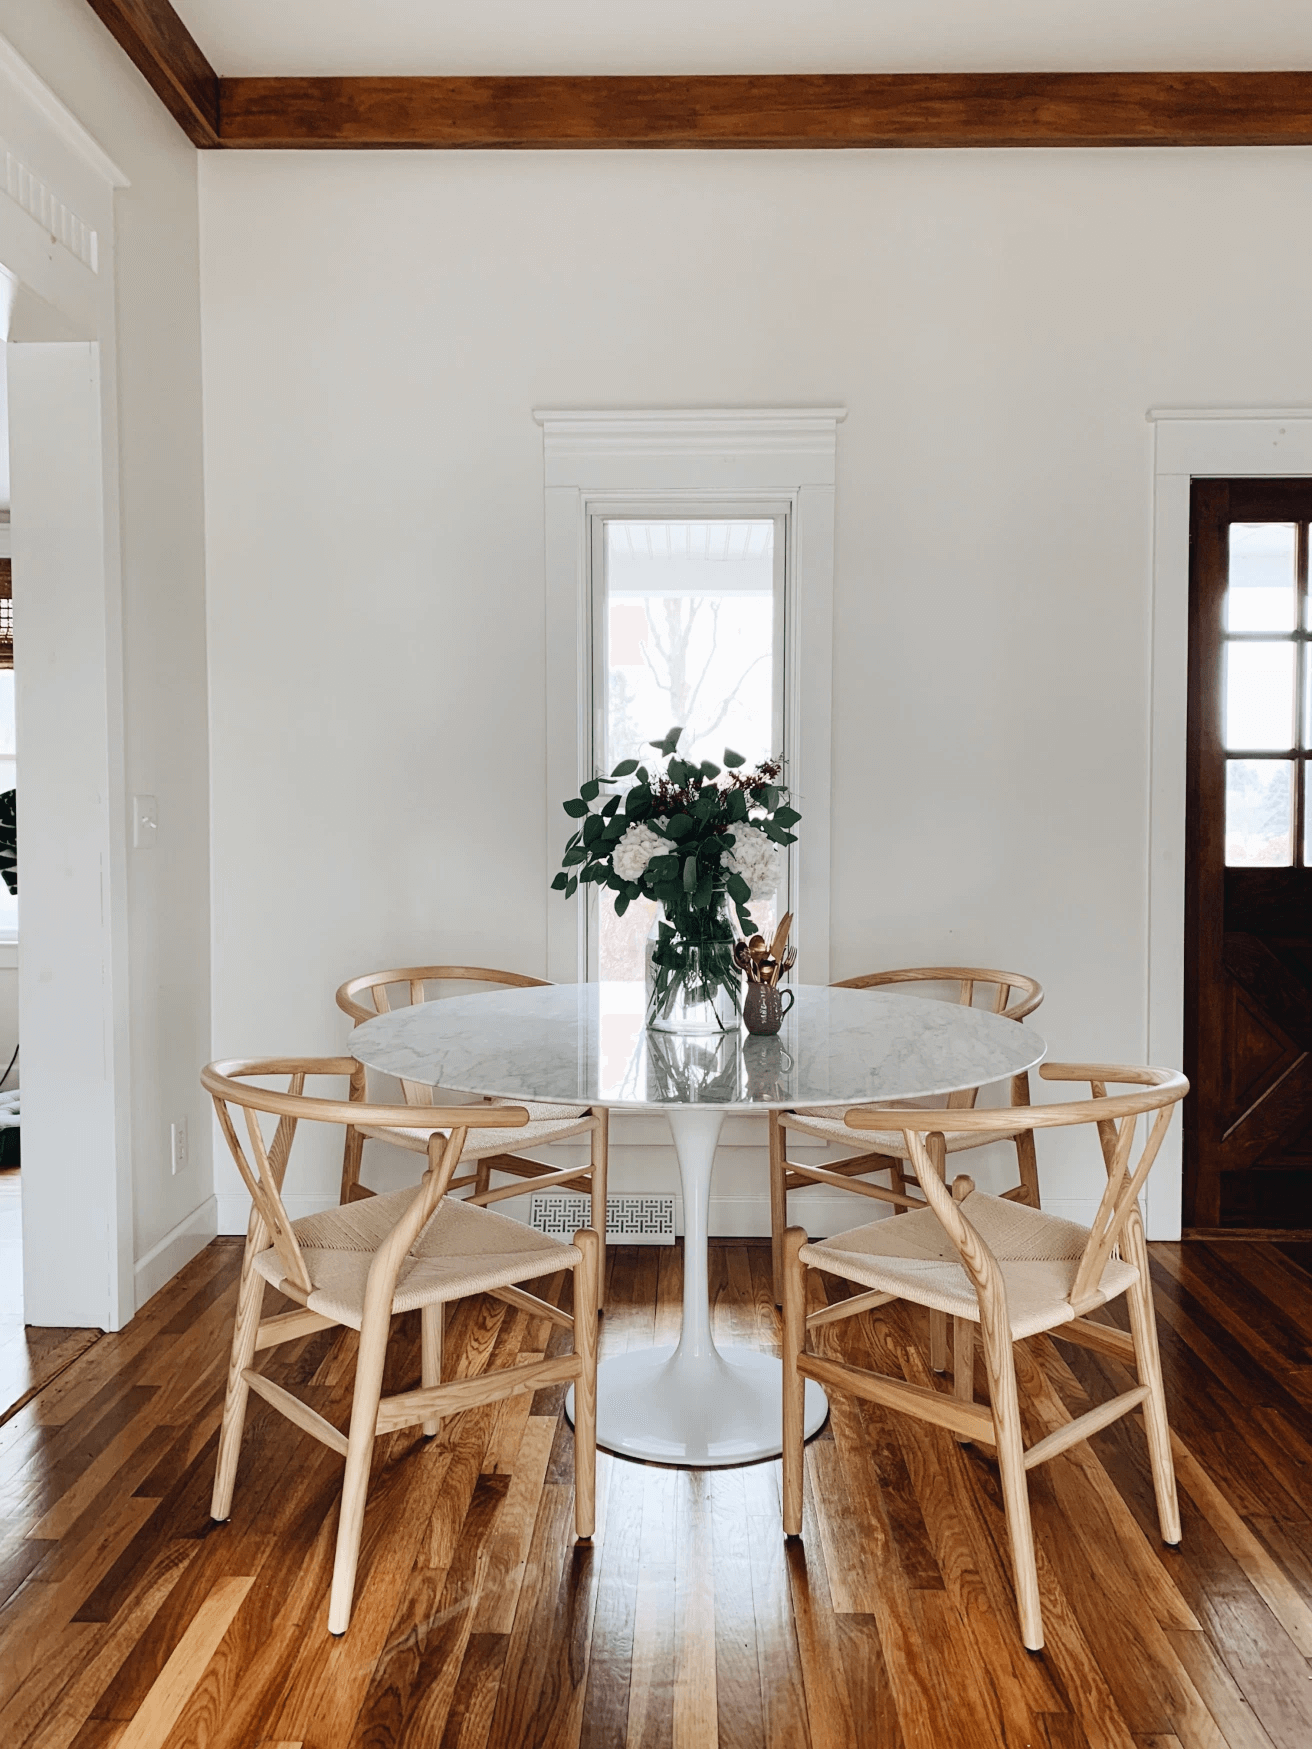 this is a mid century inspired dining table with wishbone chairs